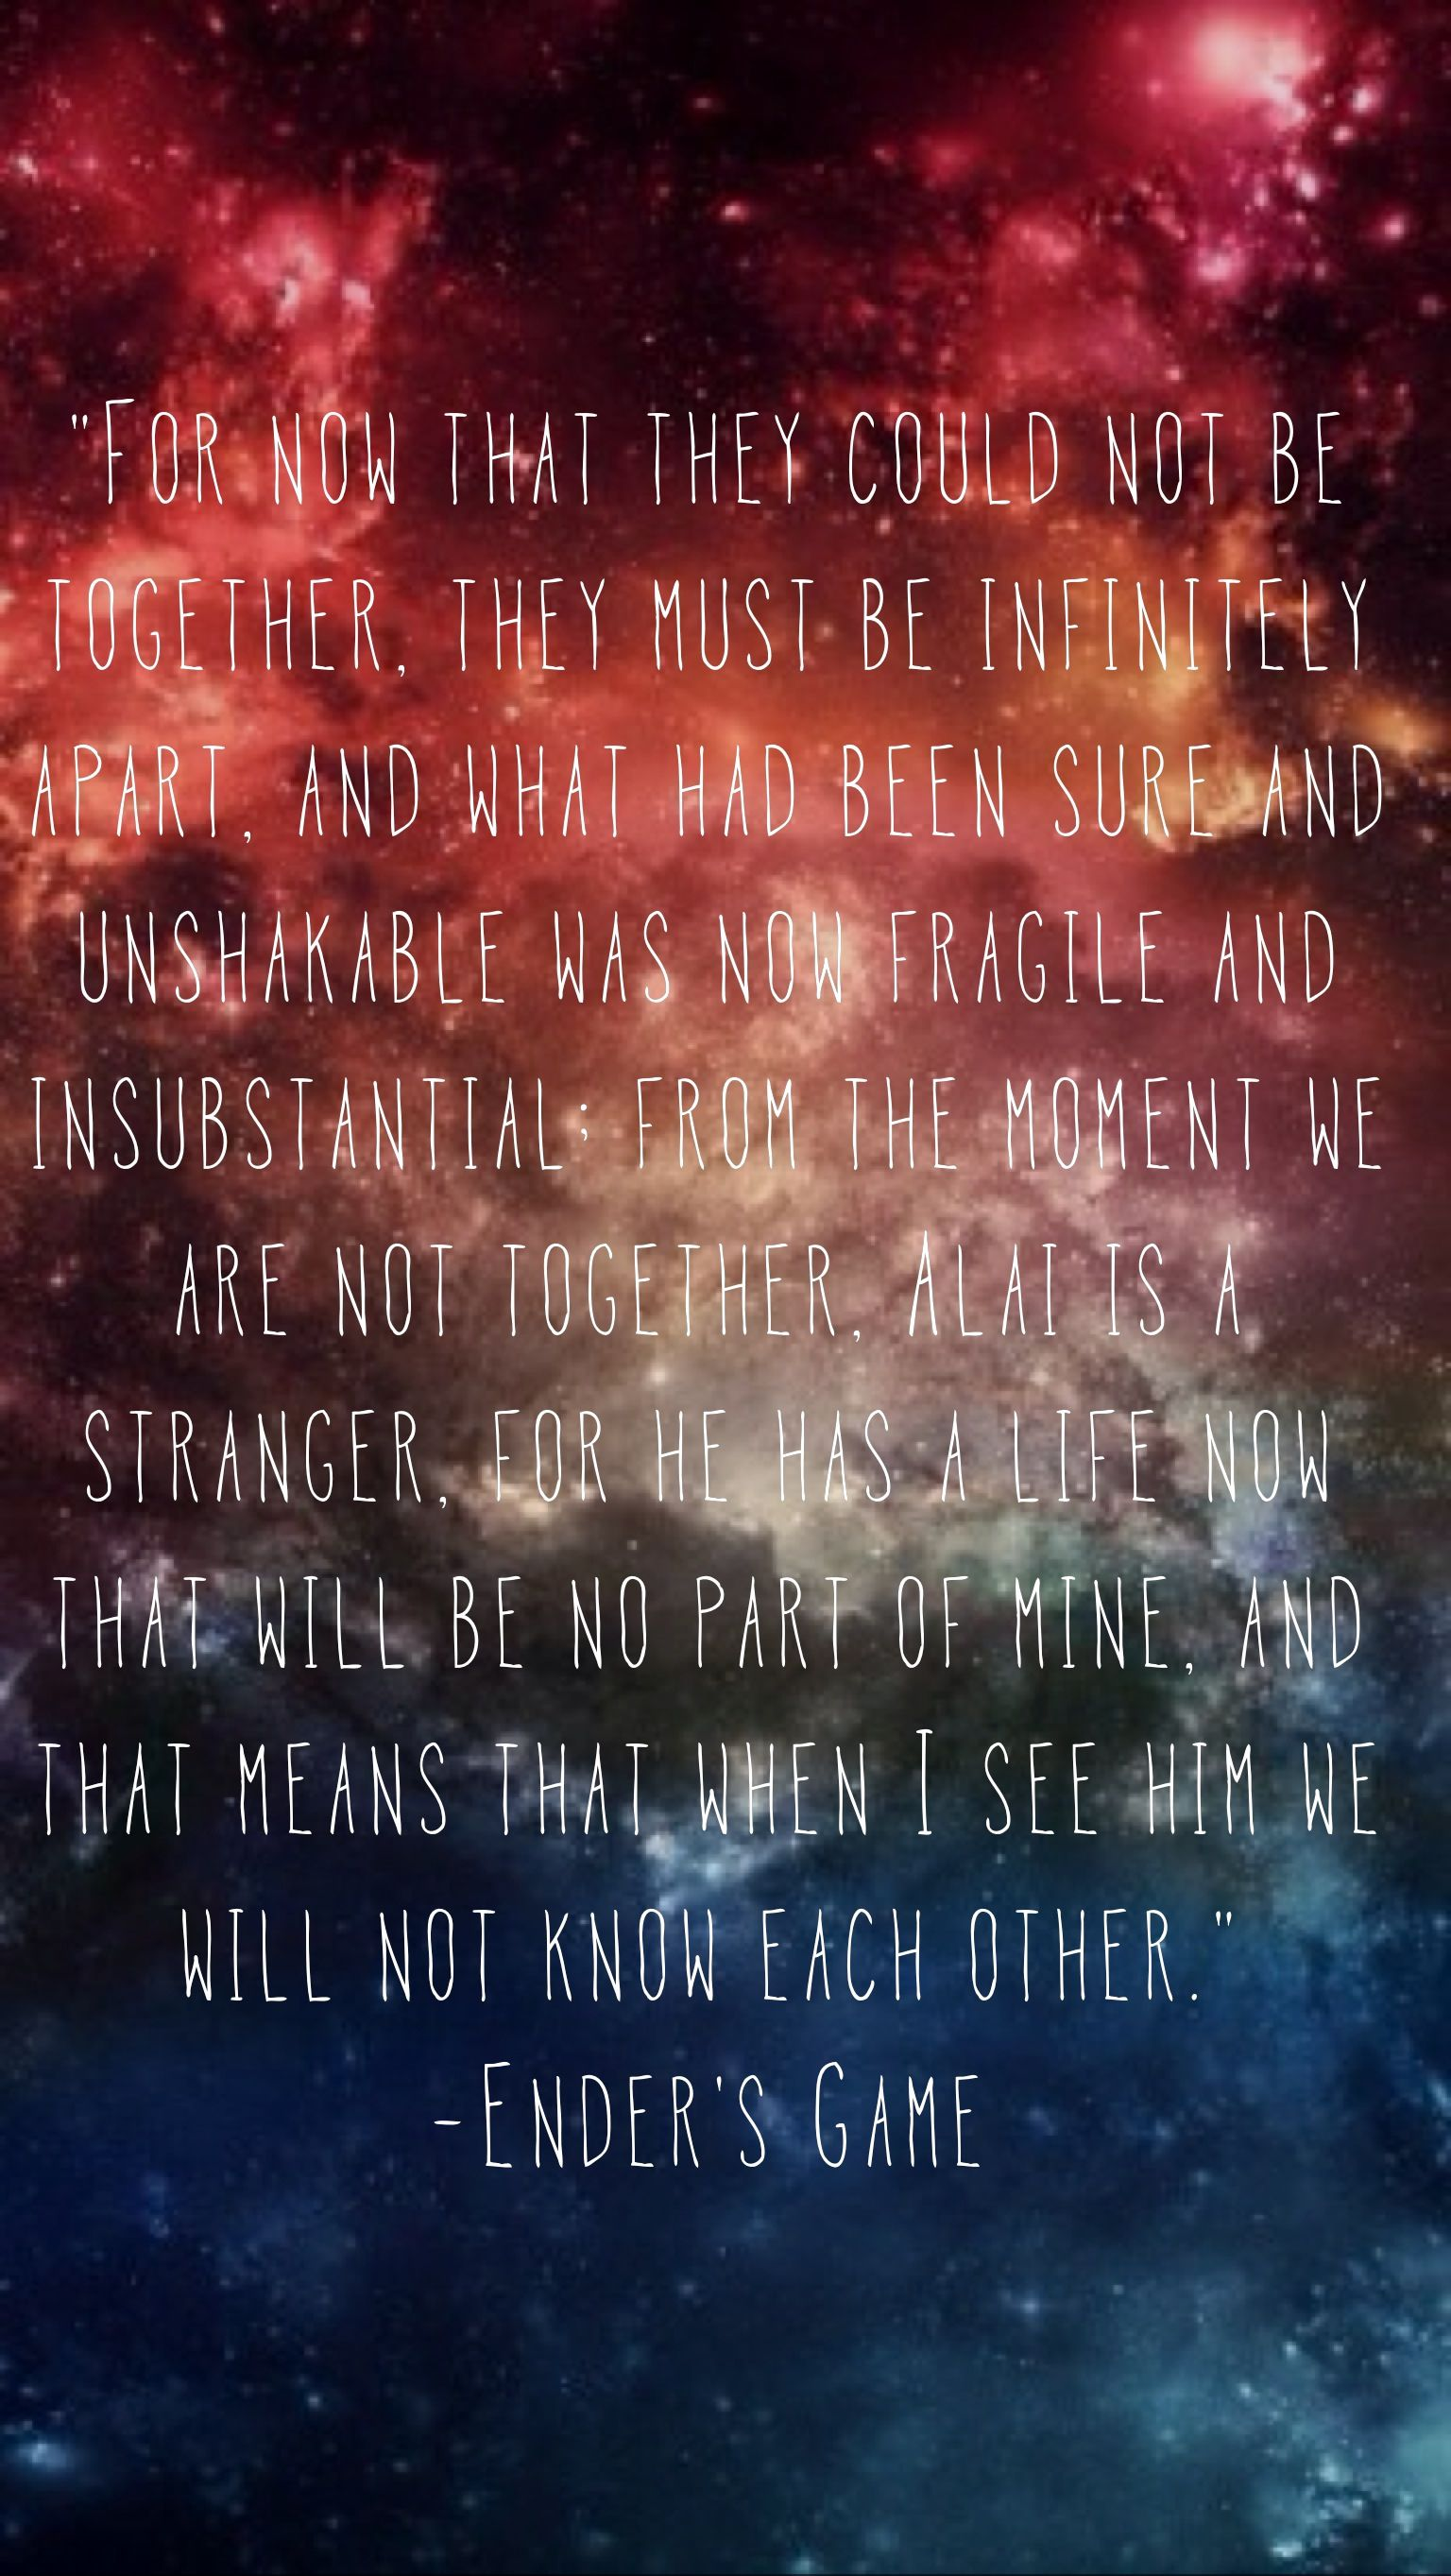 Enders Game Quotes. QuotesGram